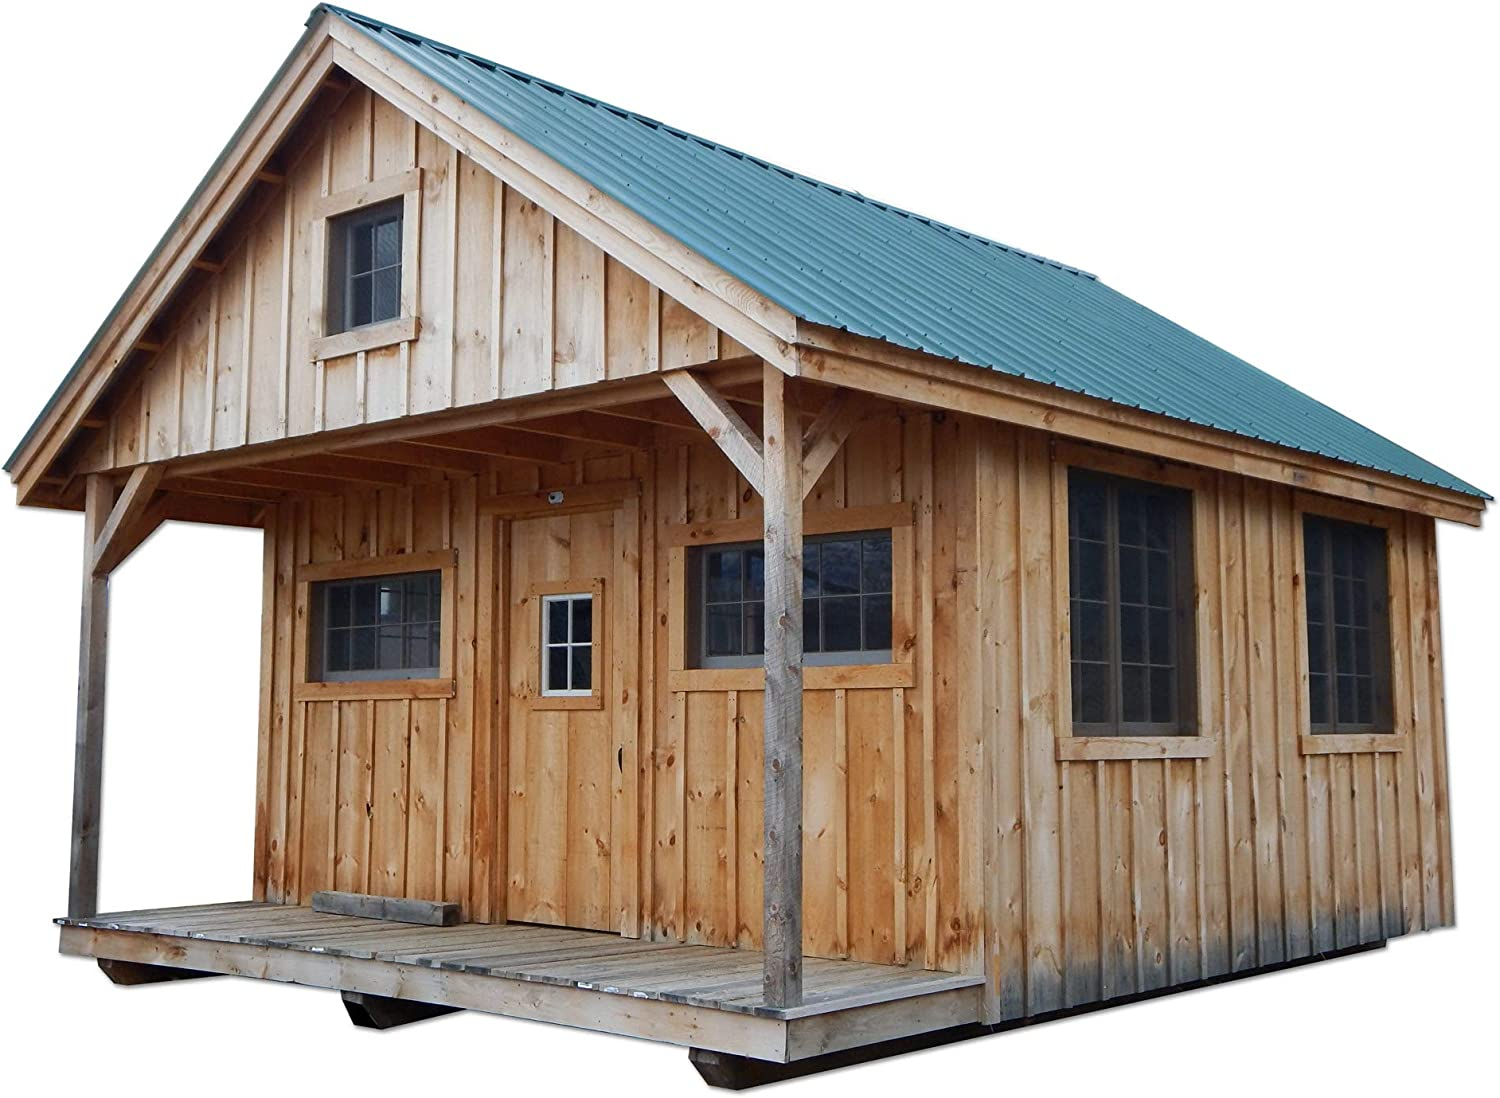 Pre-Cut Kit - 16x20 Timber Frame Post and Beam Vermont Cottage (C) with Loft Pre-Cut Kit with Step-by-Step DIY Plans